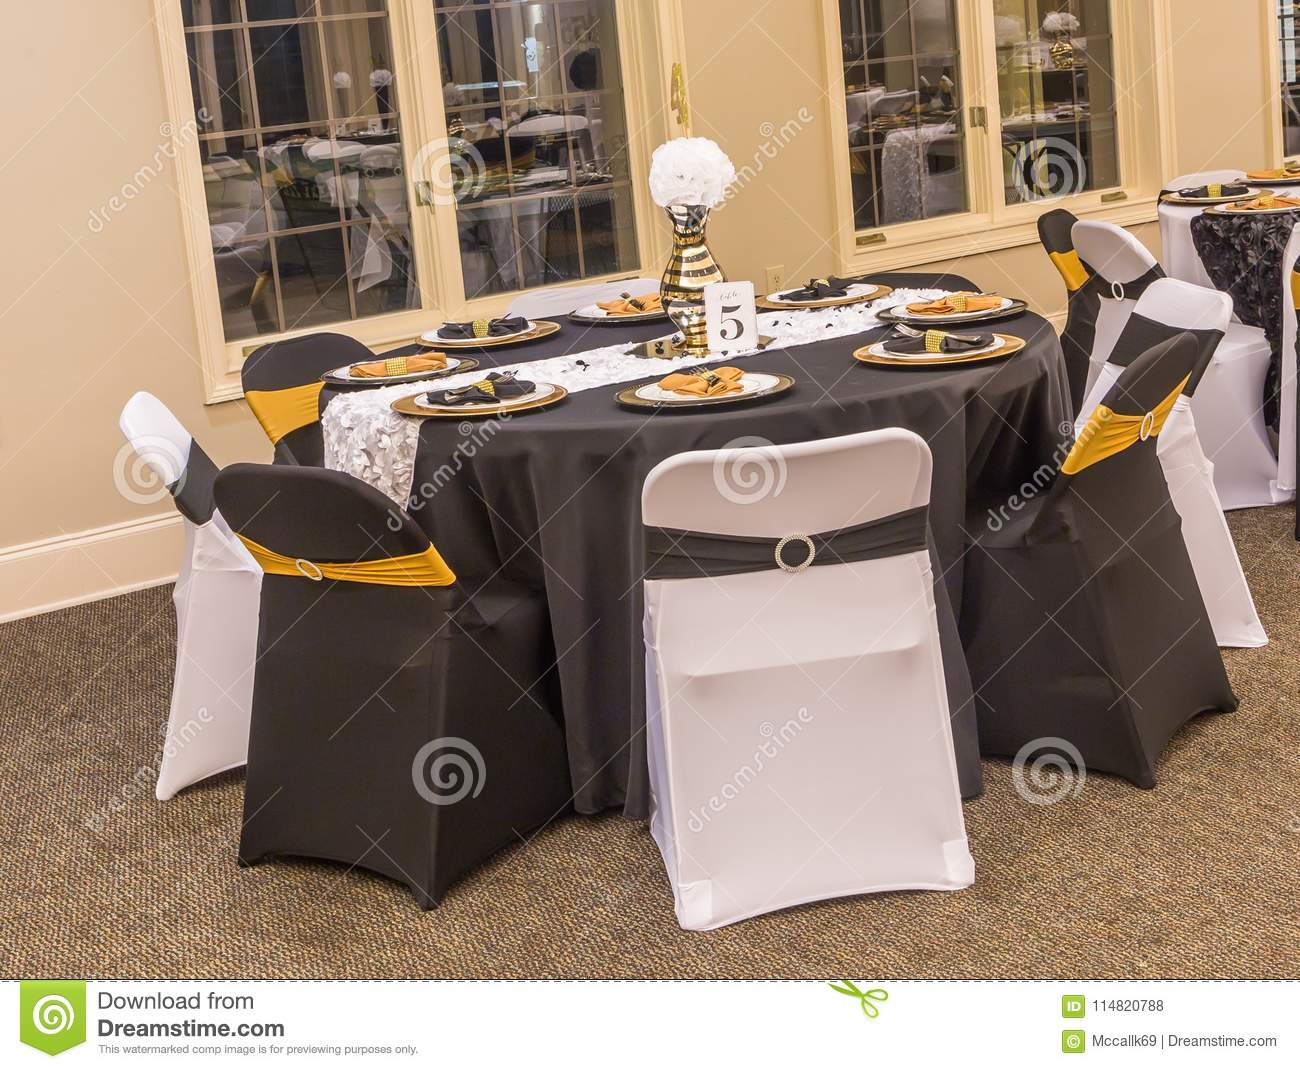 Gold Center Piece And Event Decor Or Presentation At A Birthday Party With Black White As Theme Colors